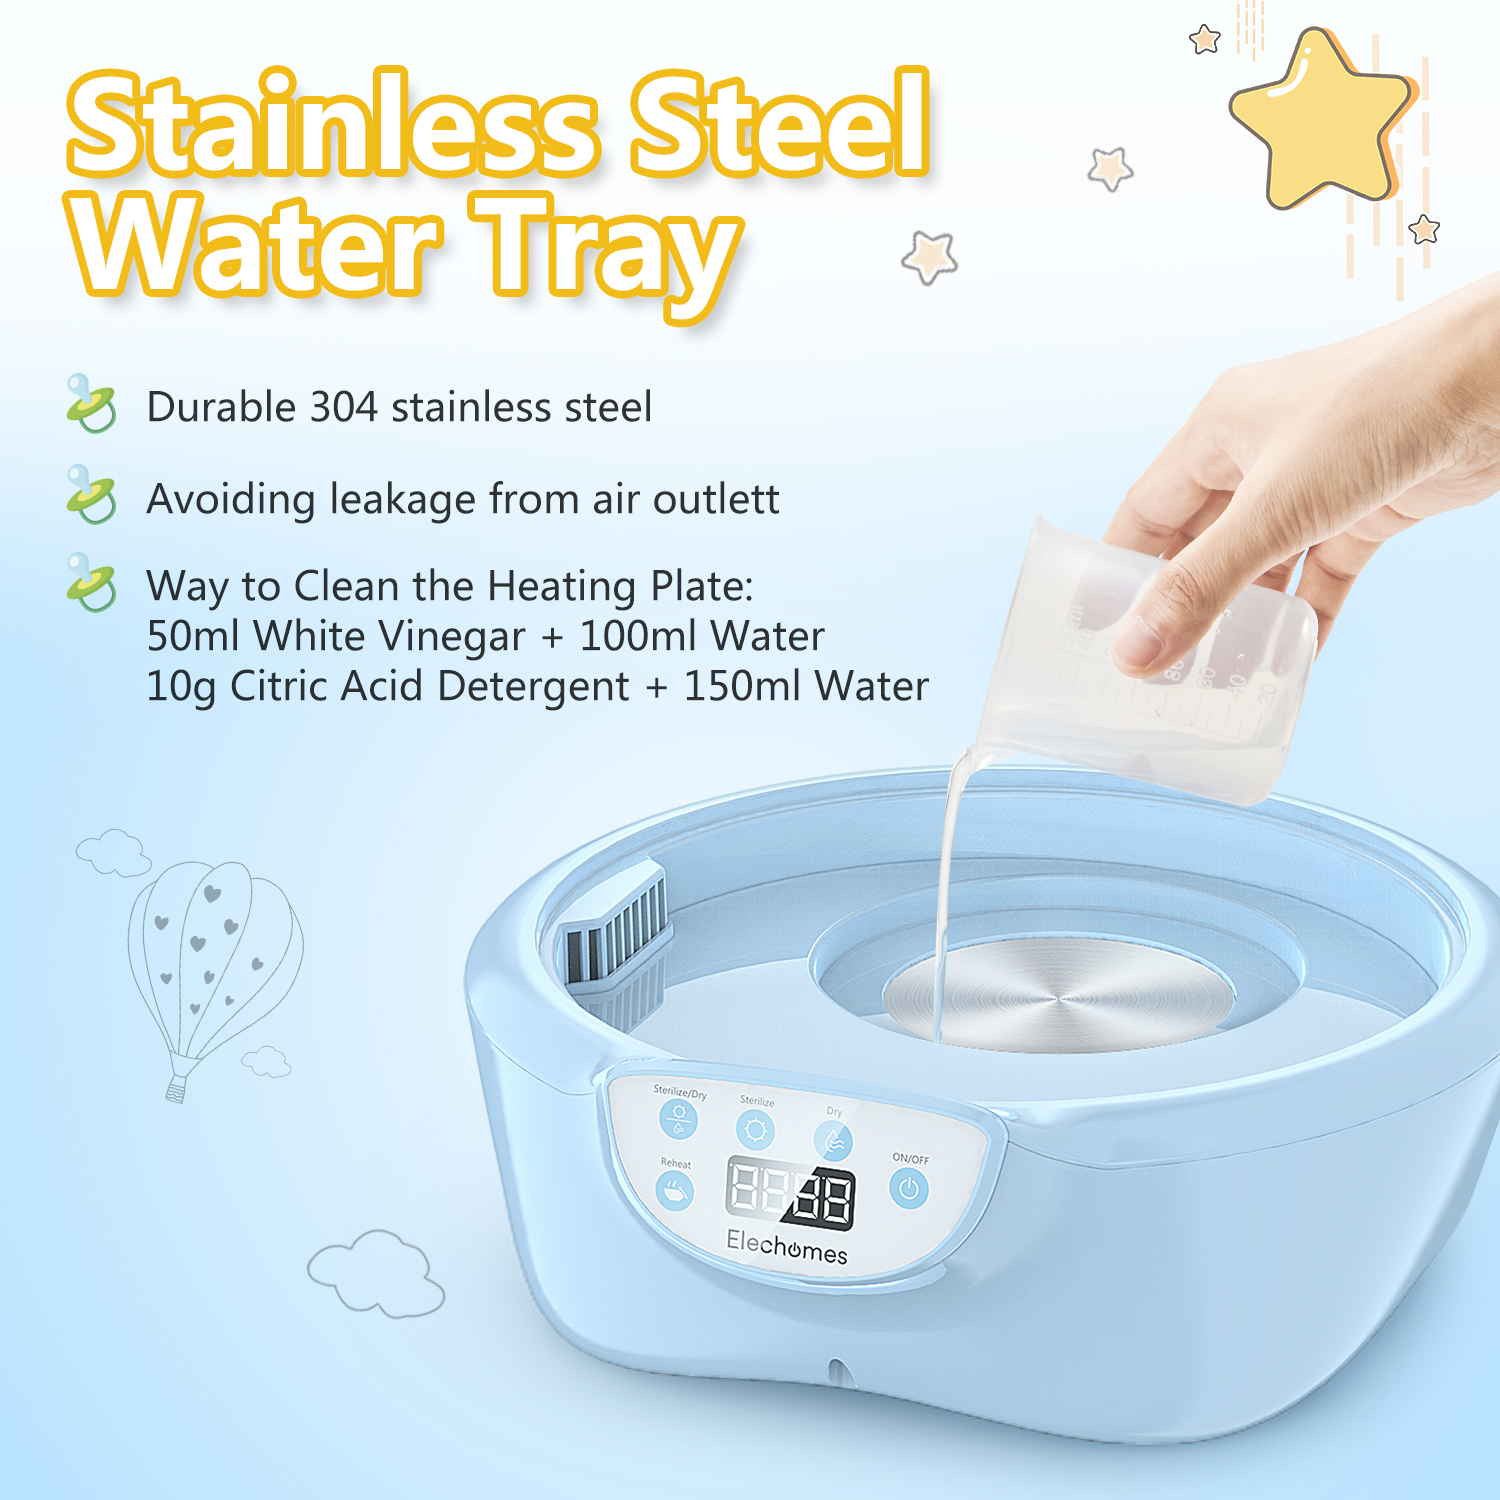 Elechomes Baby Bottle Sterilizer and Dryer 5-in-1 Multifunctional 600W Electric Steam Sterilizer Fit for 8-Ounce Dr Brown and Easy to Operate